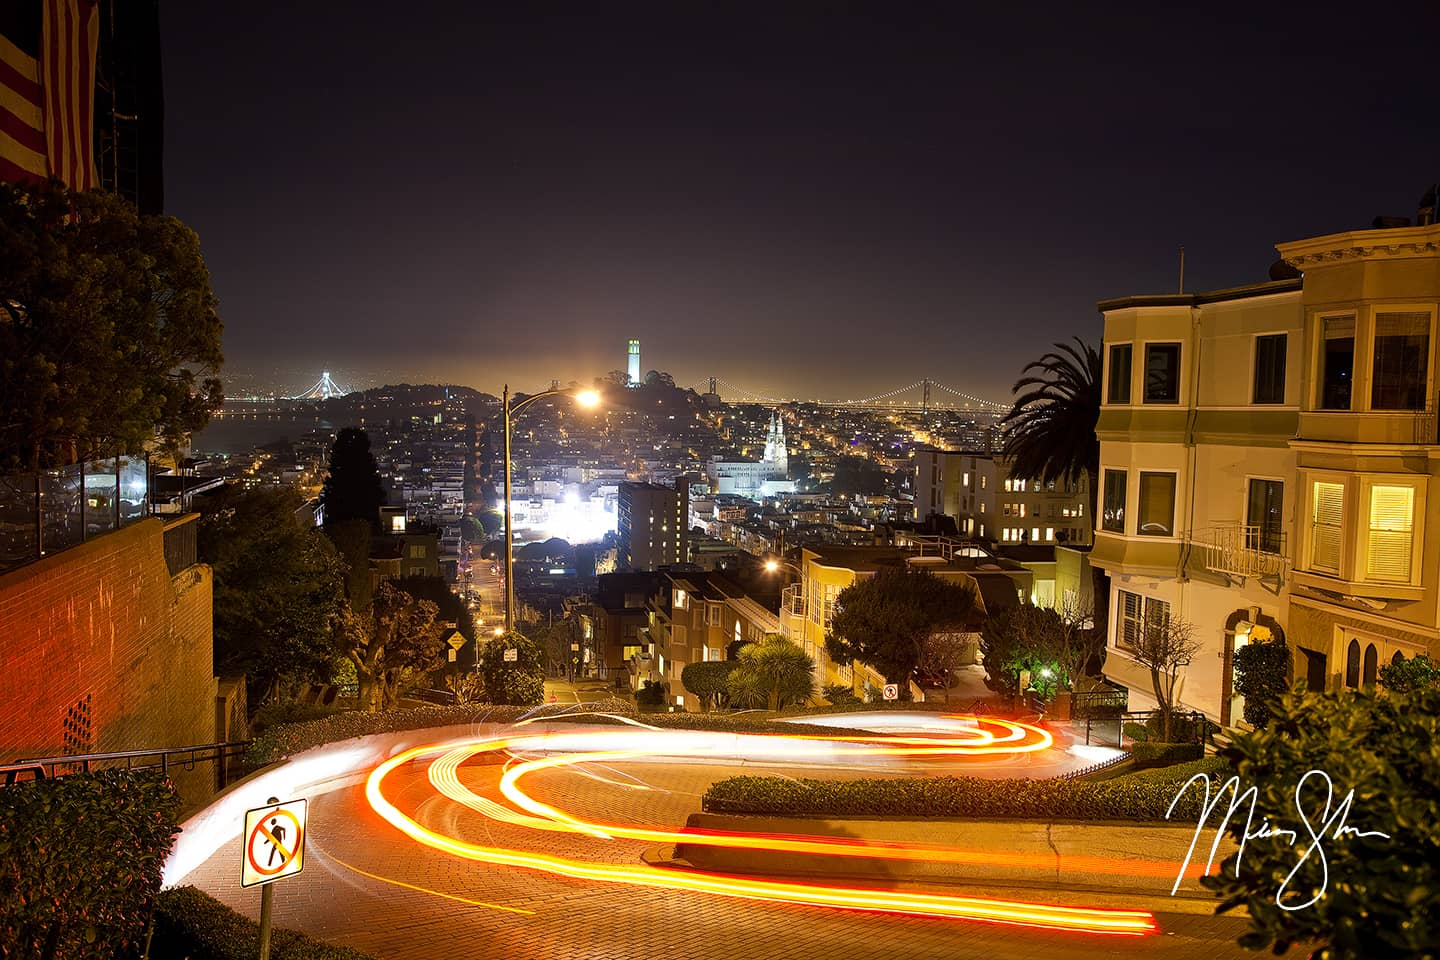 Open edition fine art print of The Lights of Lombard Street from Mickey Shannon Photography. Location: Lombard Street, San Francisco, California